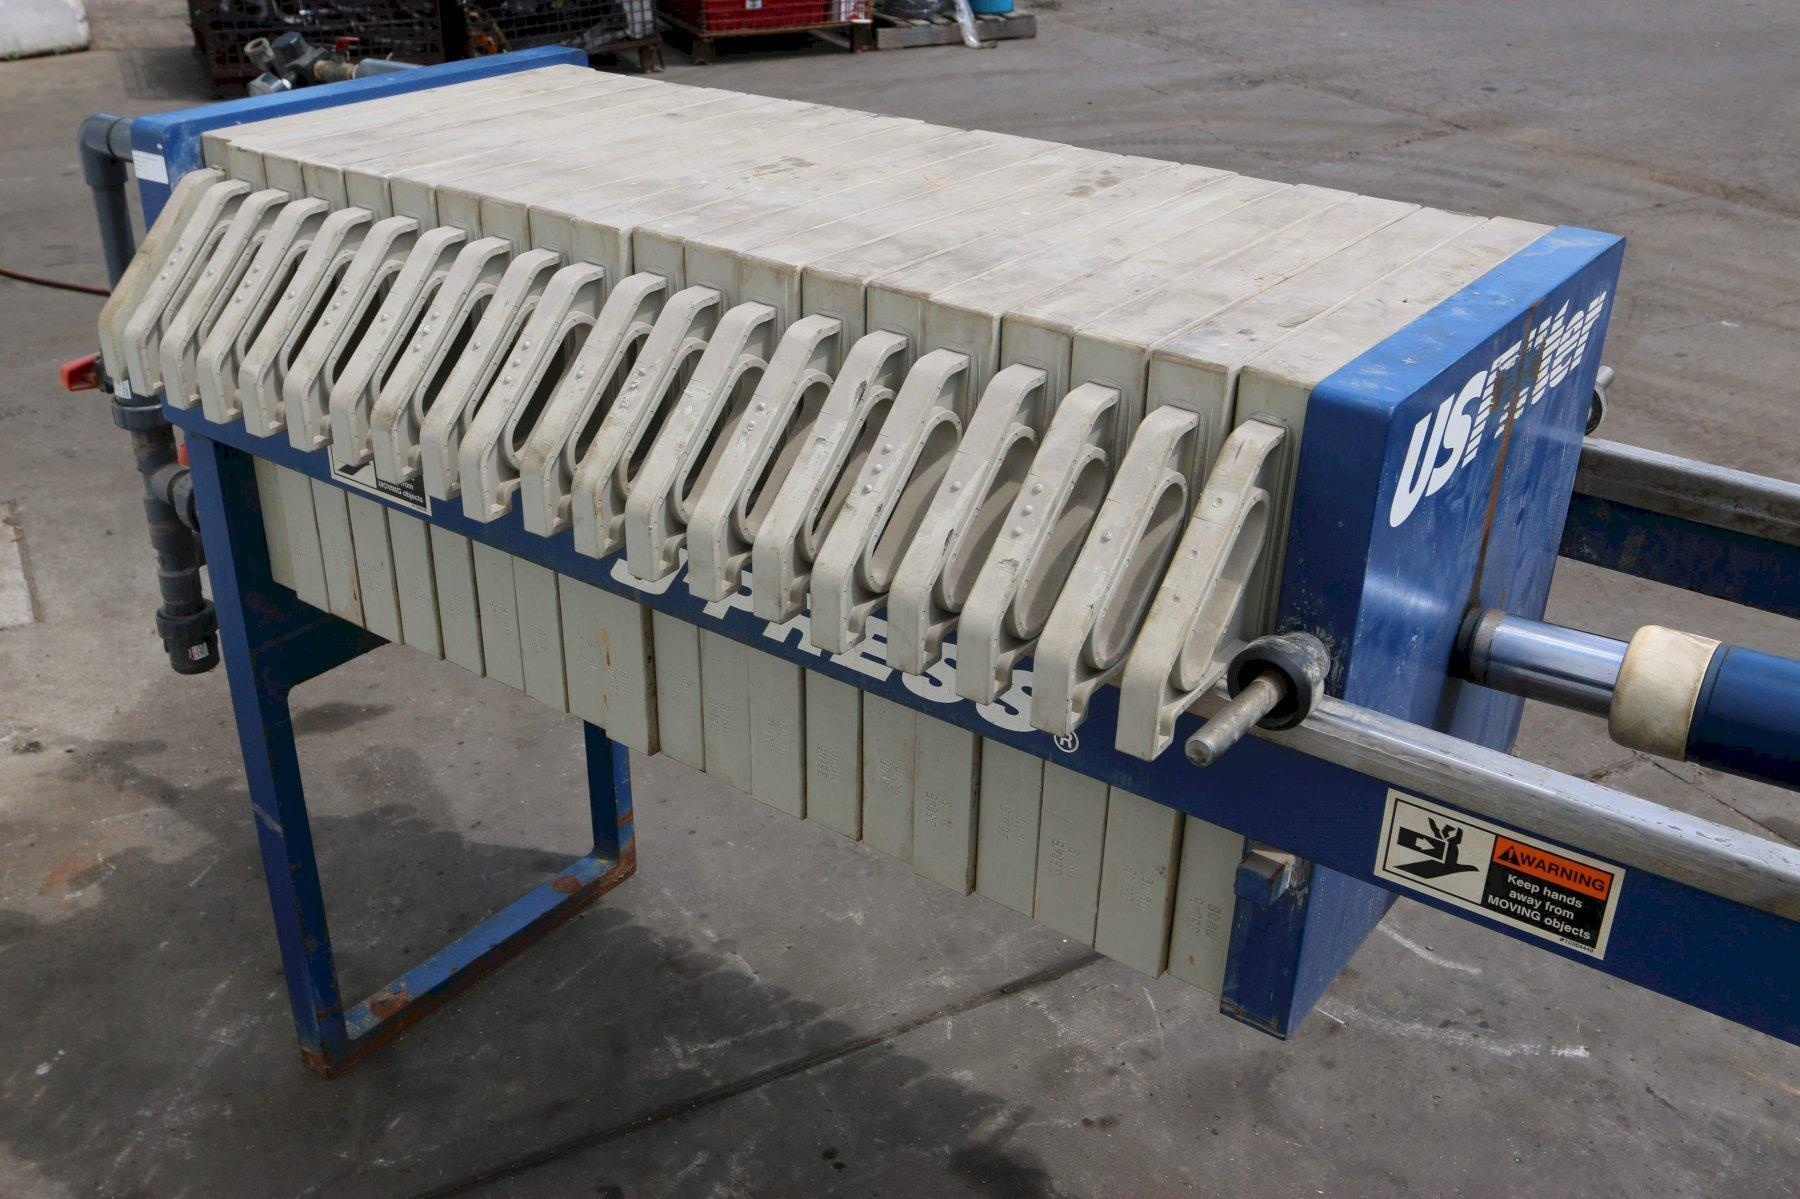 SIEMENS DEWATERING SYSTEMS FILTER PRESS: STOCK #70476